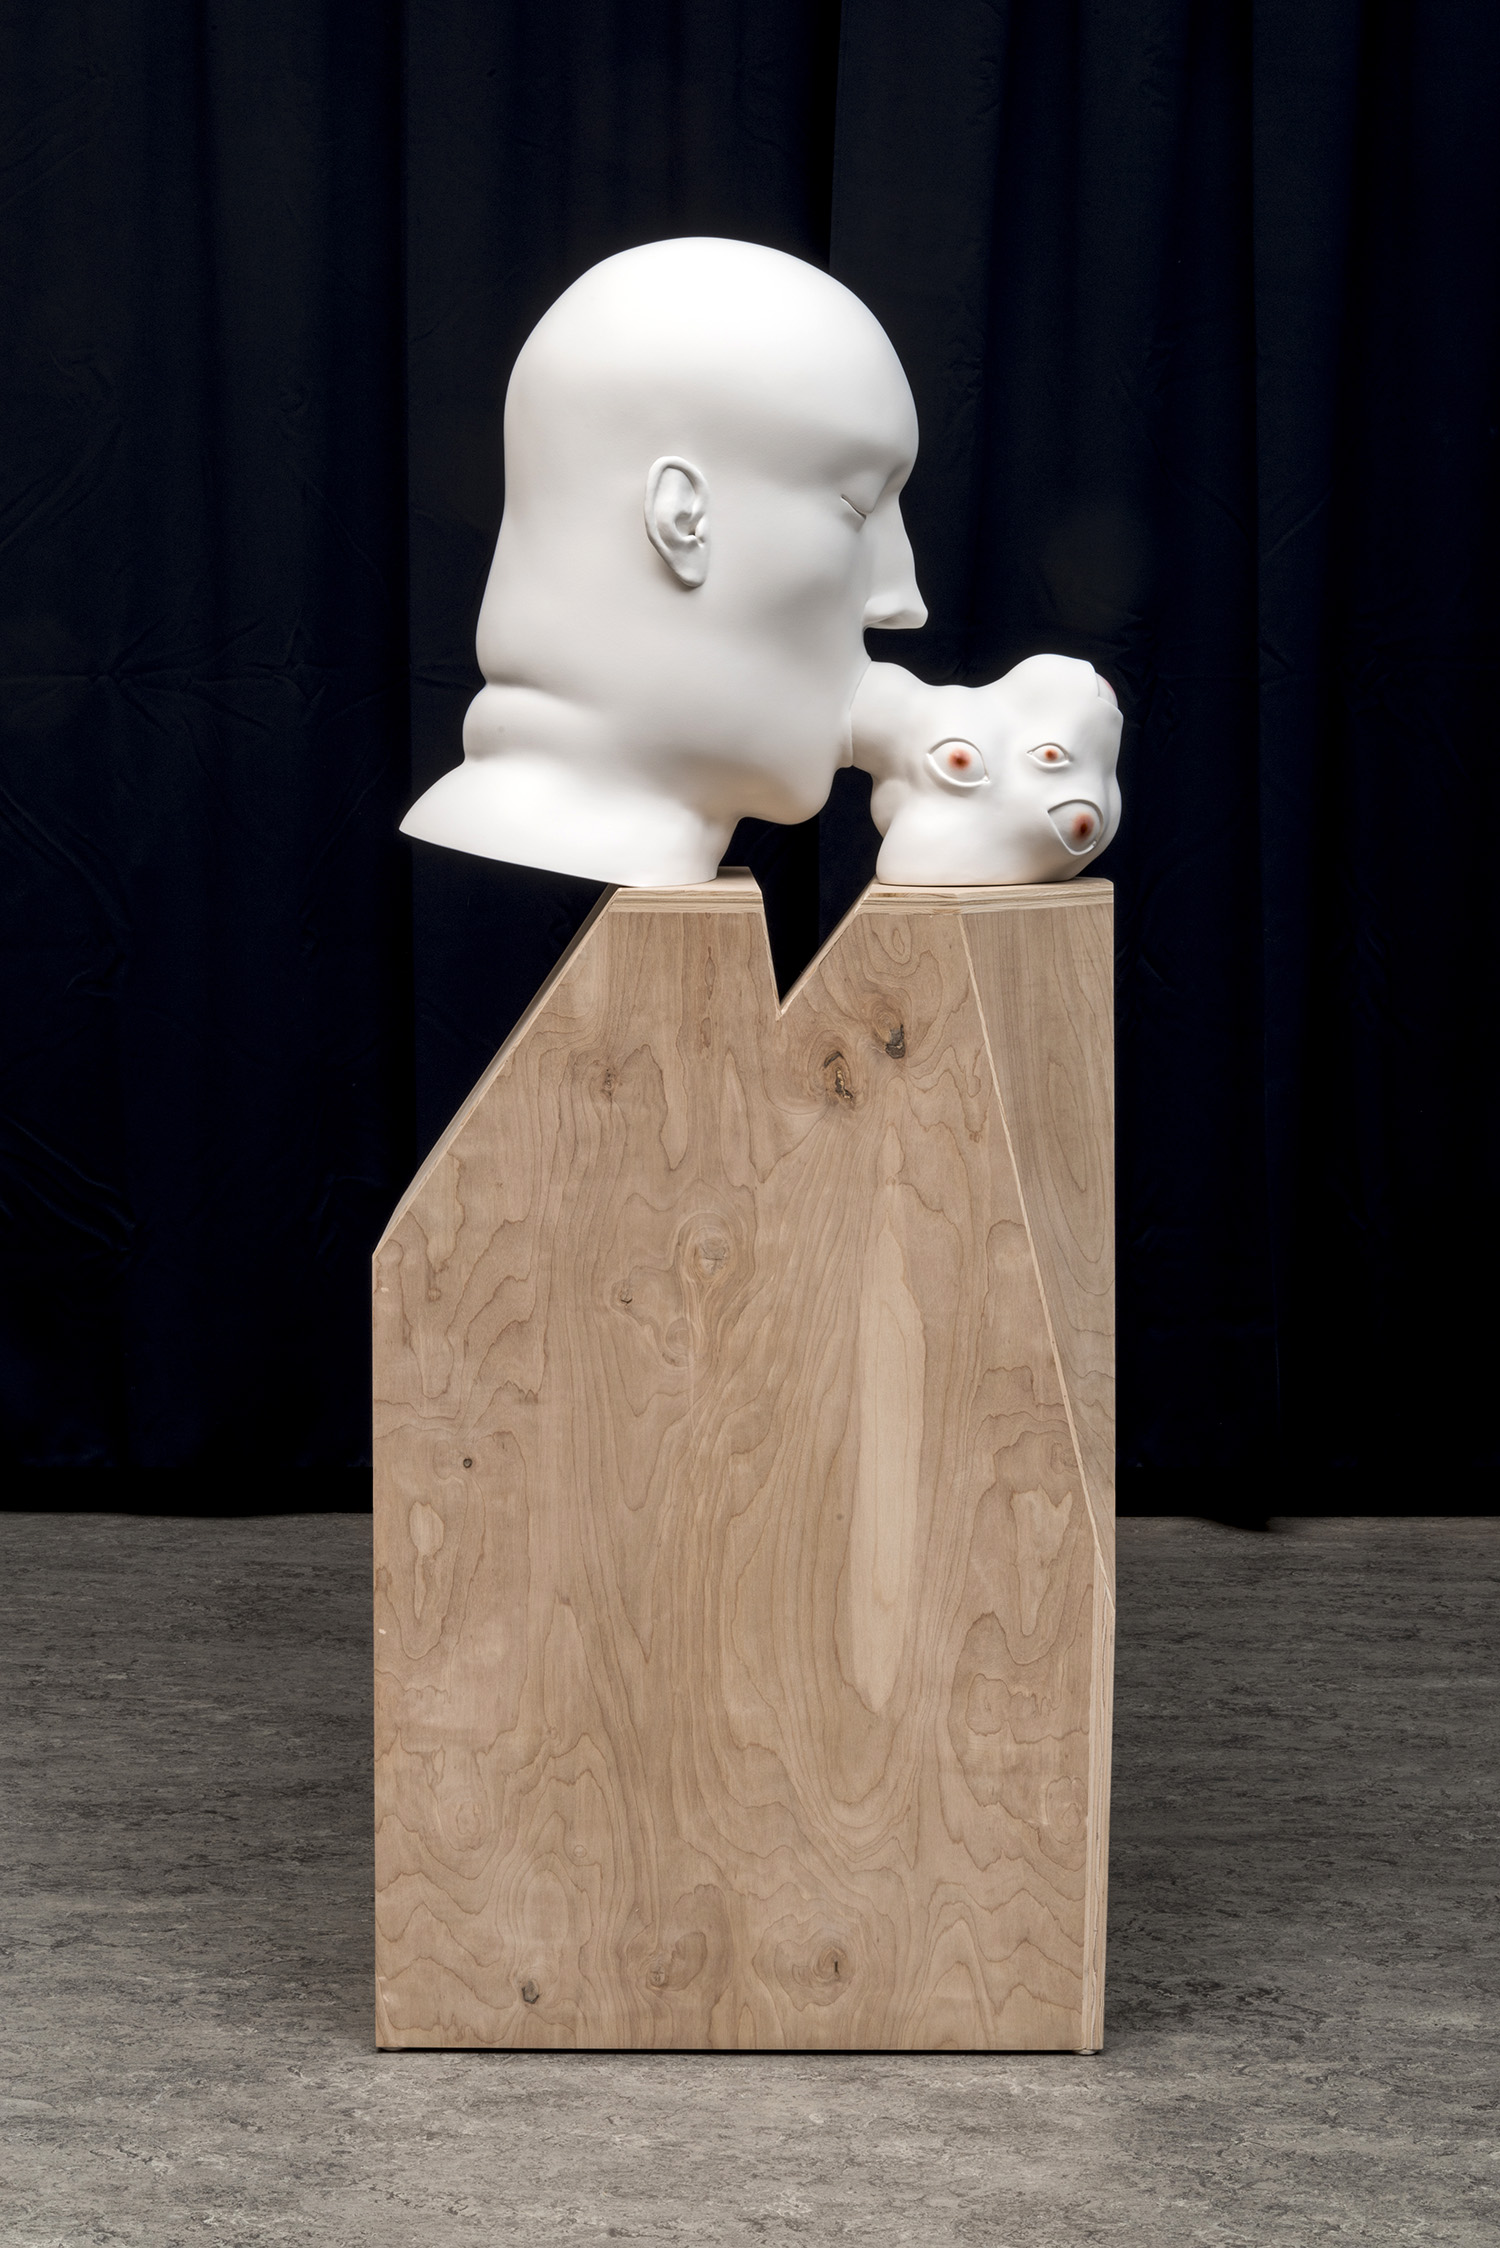 Tanya Batura  Untitled (head blob)  2014 clay, acrylic 21 x 11 x 24 inches 60 x 13 x 24 inches with pedestal Courtesy of 101/Exhibit   Photography: Alan Shaffer